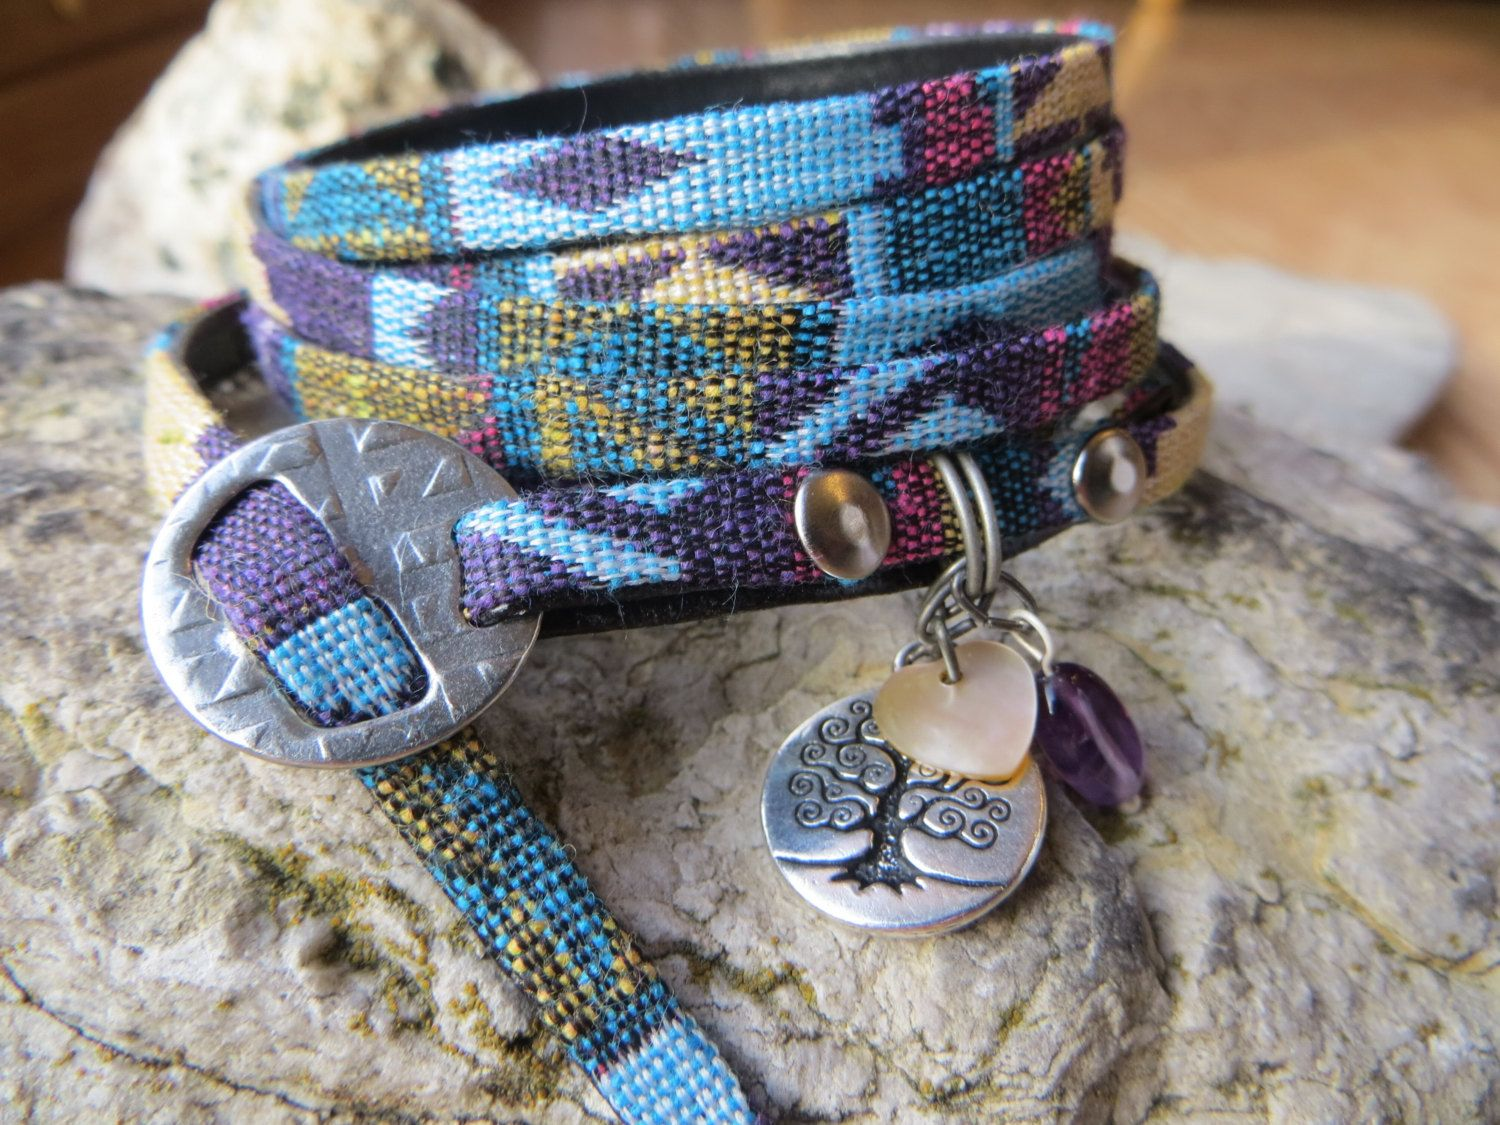 Multi Wrap Woven Cotton Cord Bracelet Six Wrap With Charms Adjustable Purple Silver by ToZenAndBack on Etsy https://www.etsy.com/listing/260902198/multi-wrap-woven-cotton-cord-bracelet